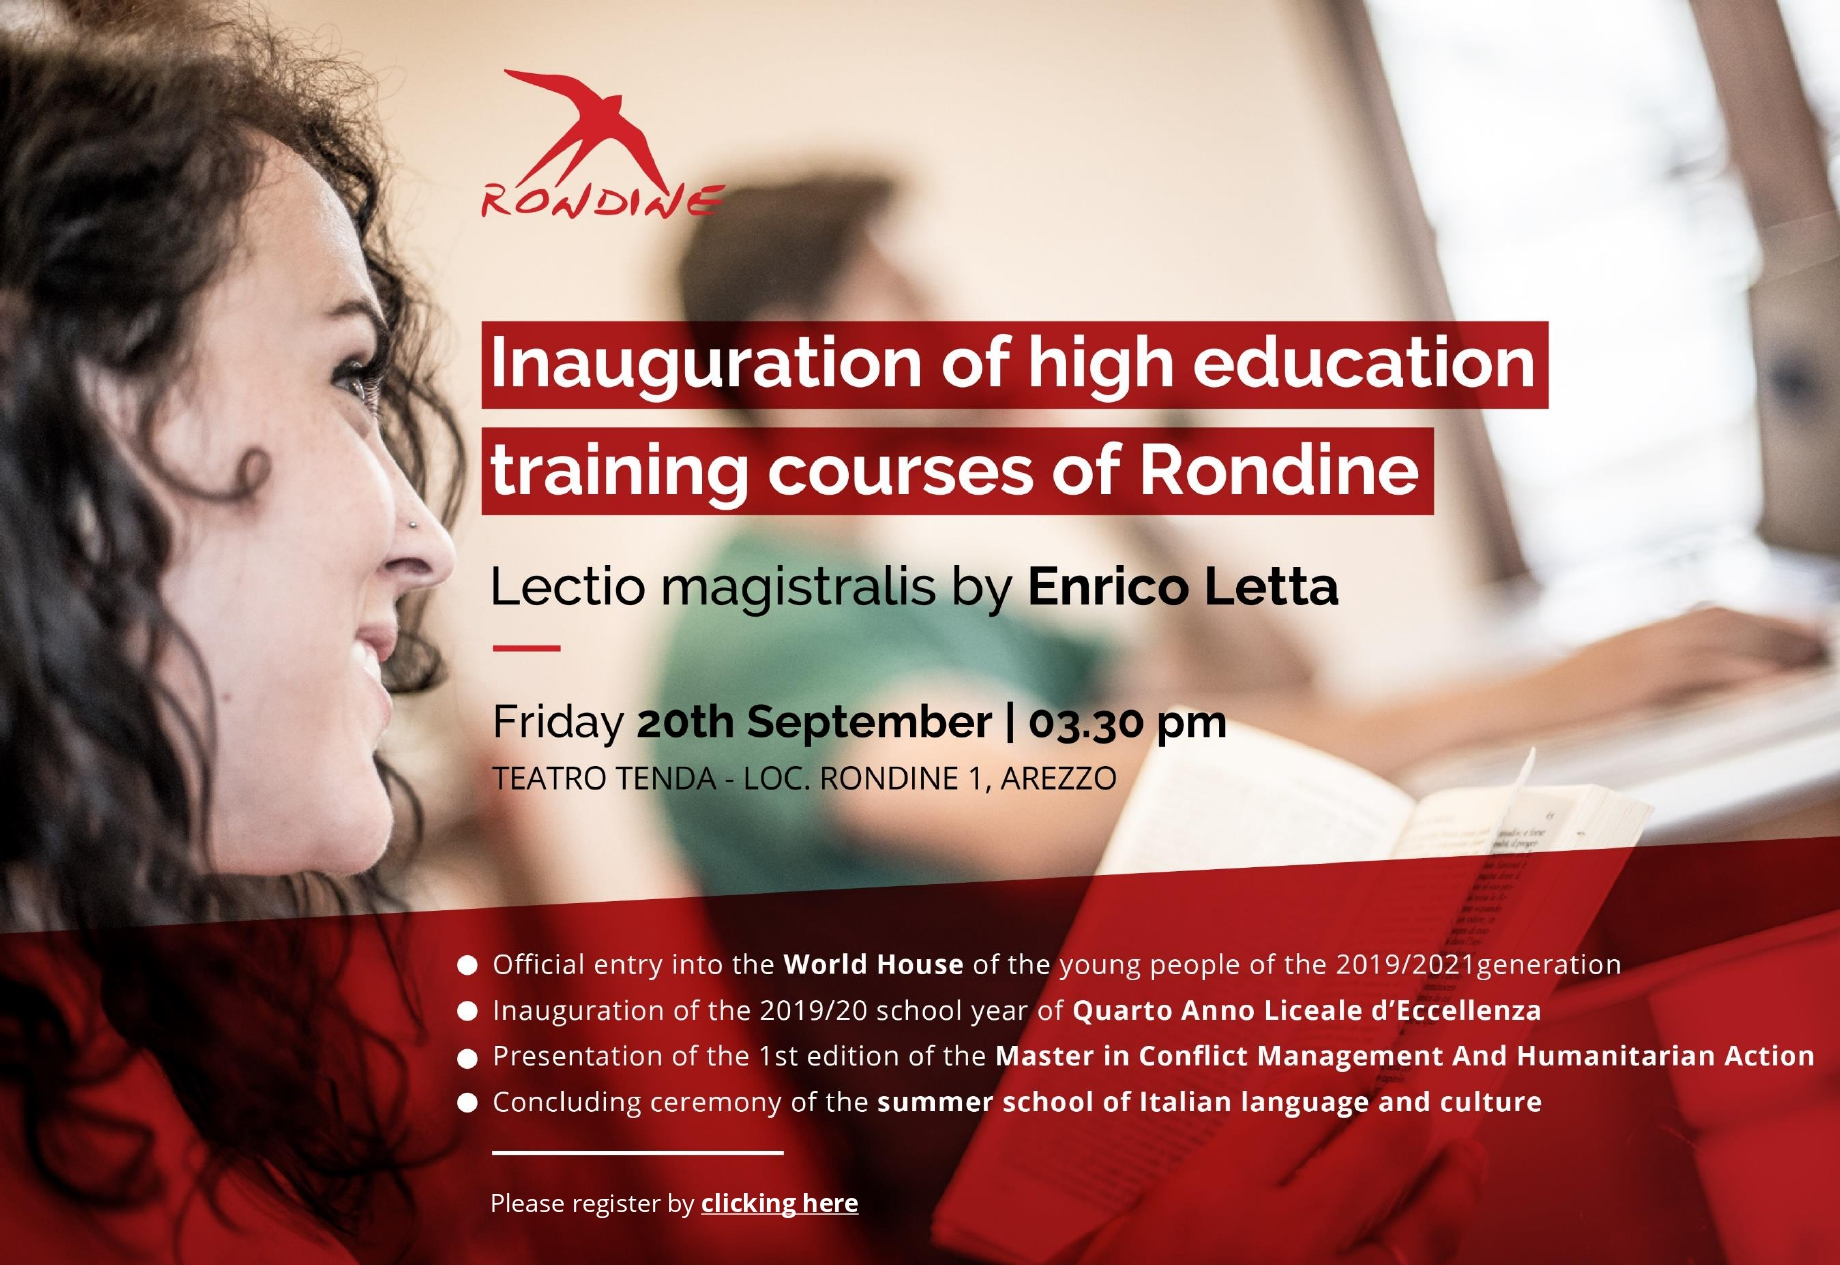 Invitation_20_september_inauguration_of_high_education_training_courses_of_rondine__eng_pages-to-jpg-0001